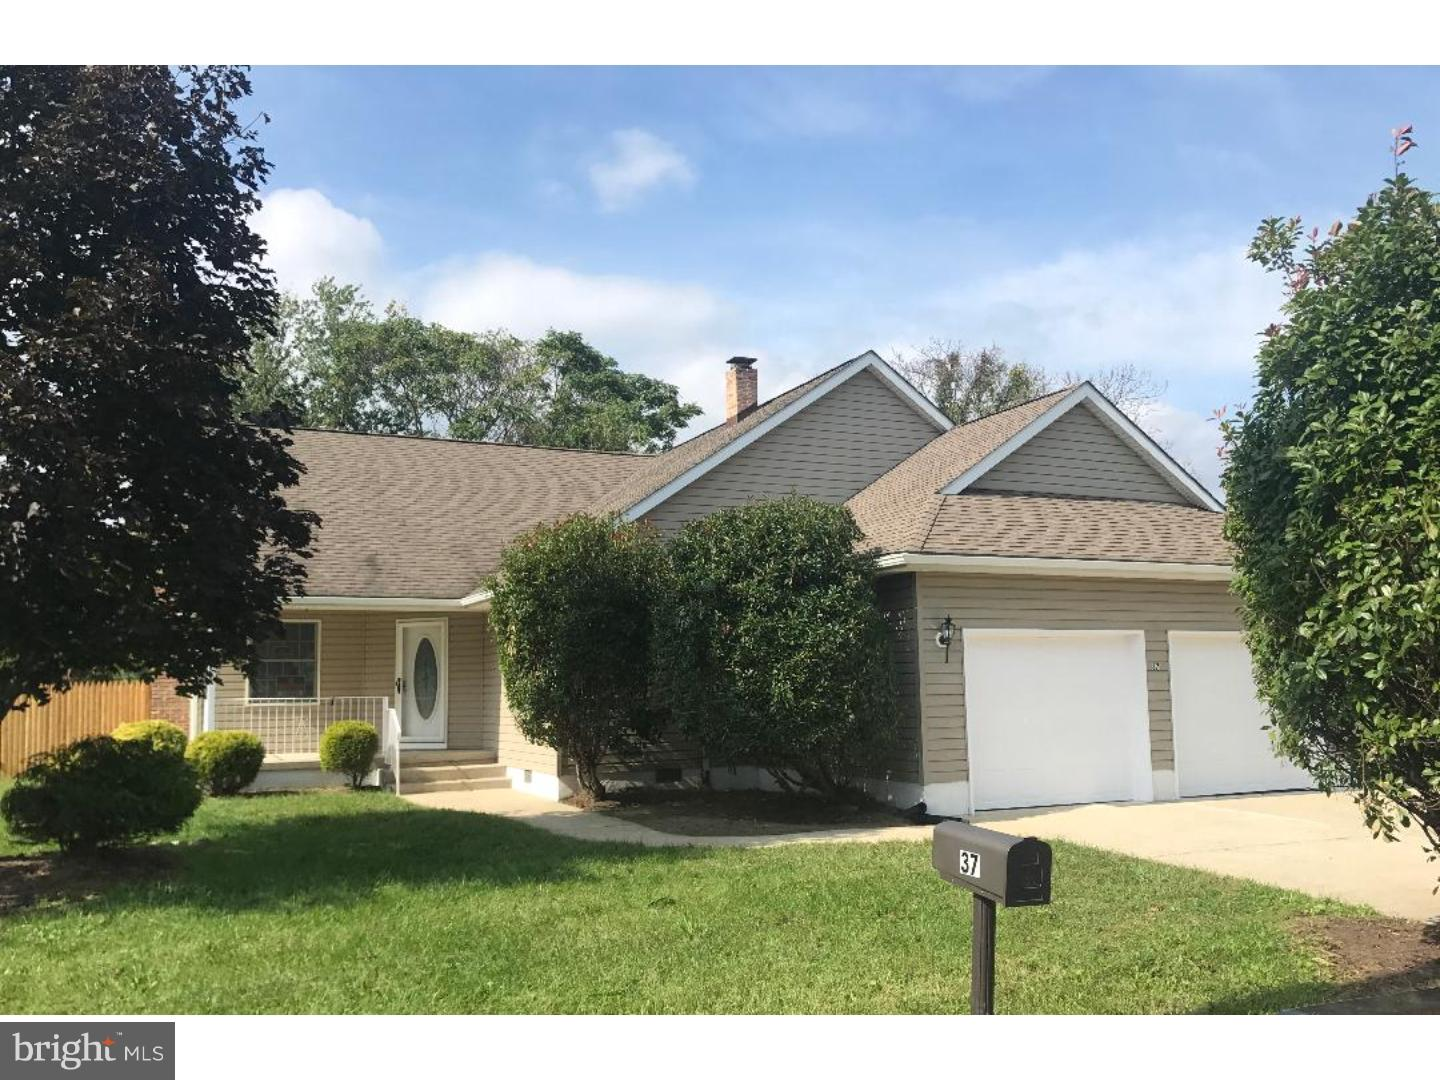 Single Family Home for Sale at 37 WRIGHT Street Penns Grove, New Jersey 08069 United States